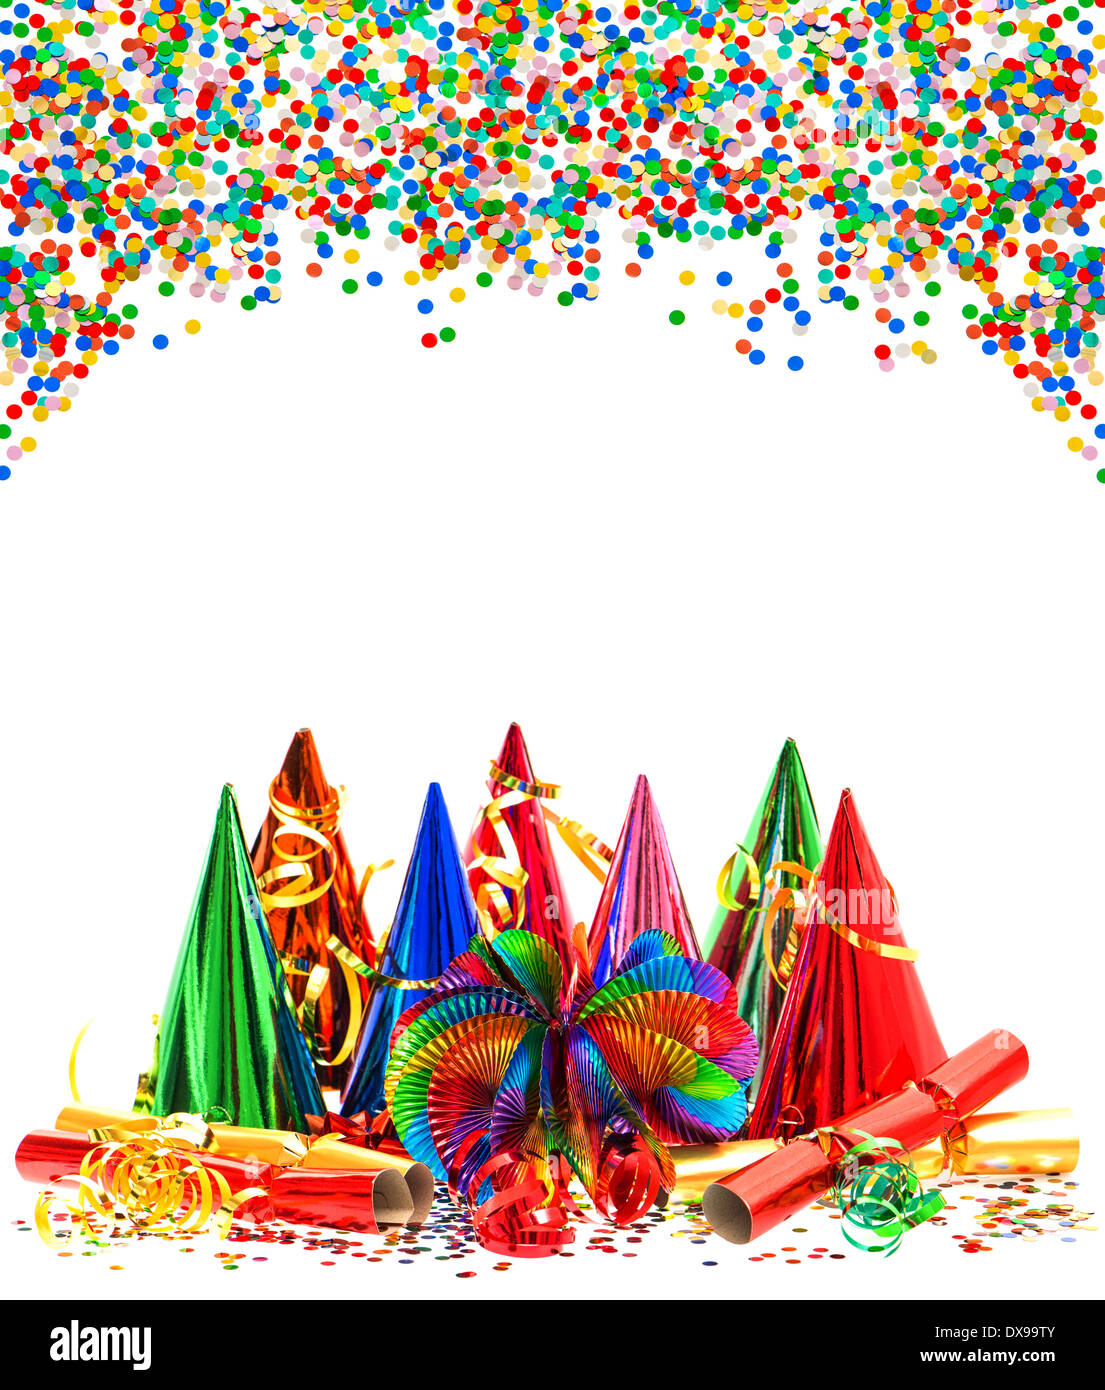 colorful garlands streamer party hats and confetti carnival birthday new year